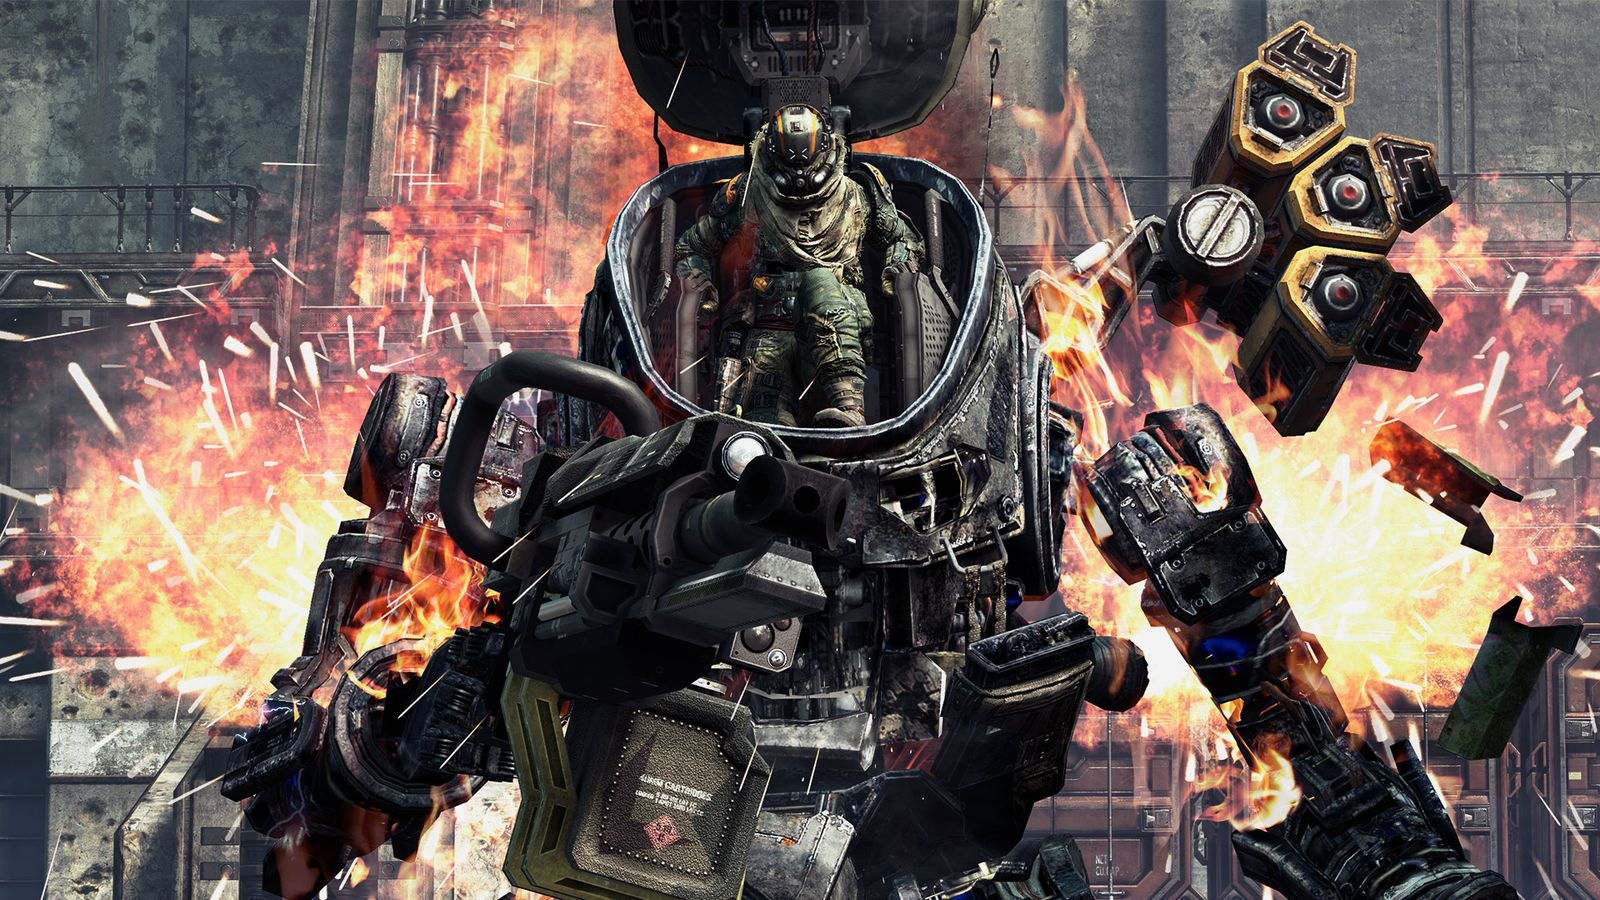 Nintnedo Fall Wallpapers Titanfall Review My Buddy Polygon